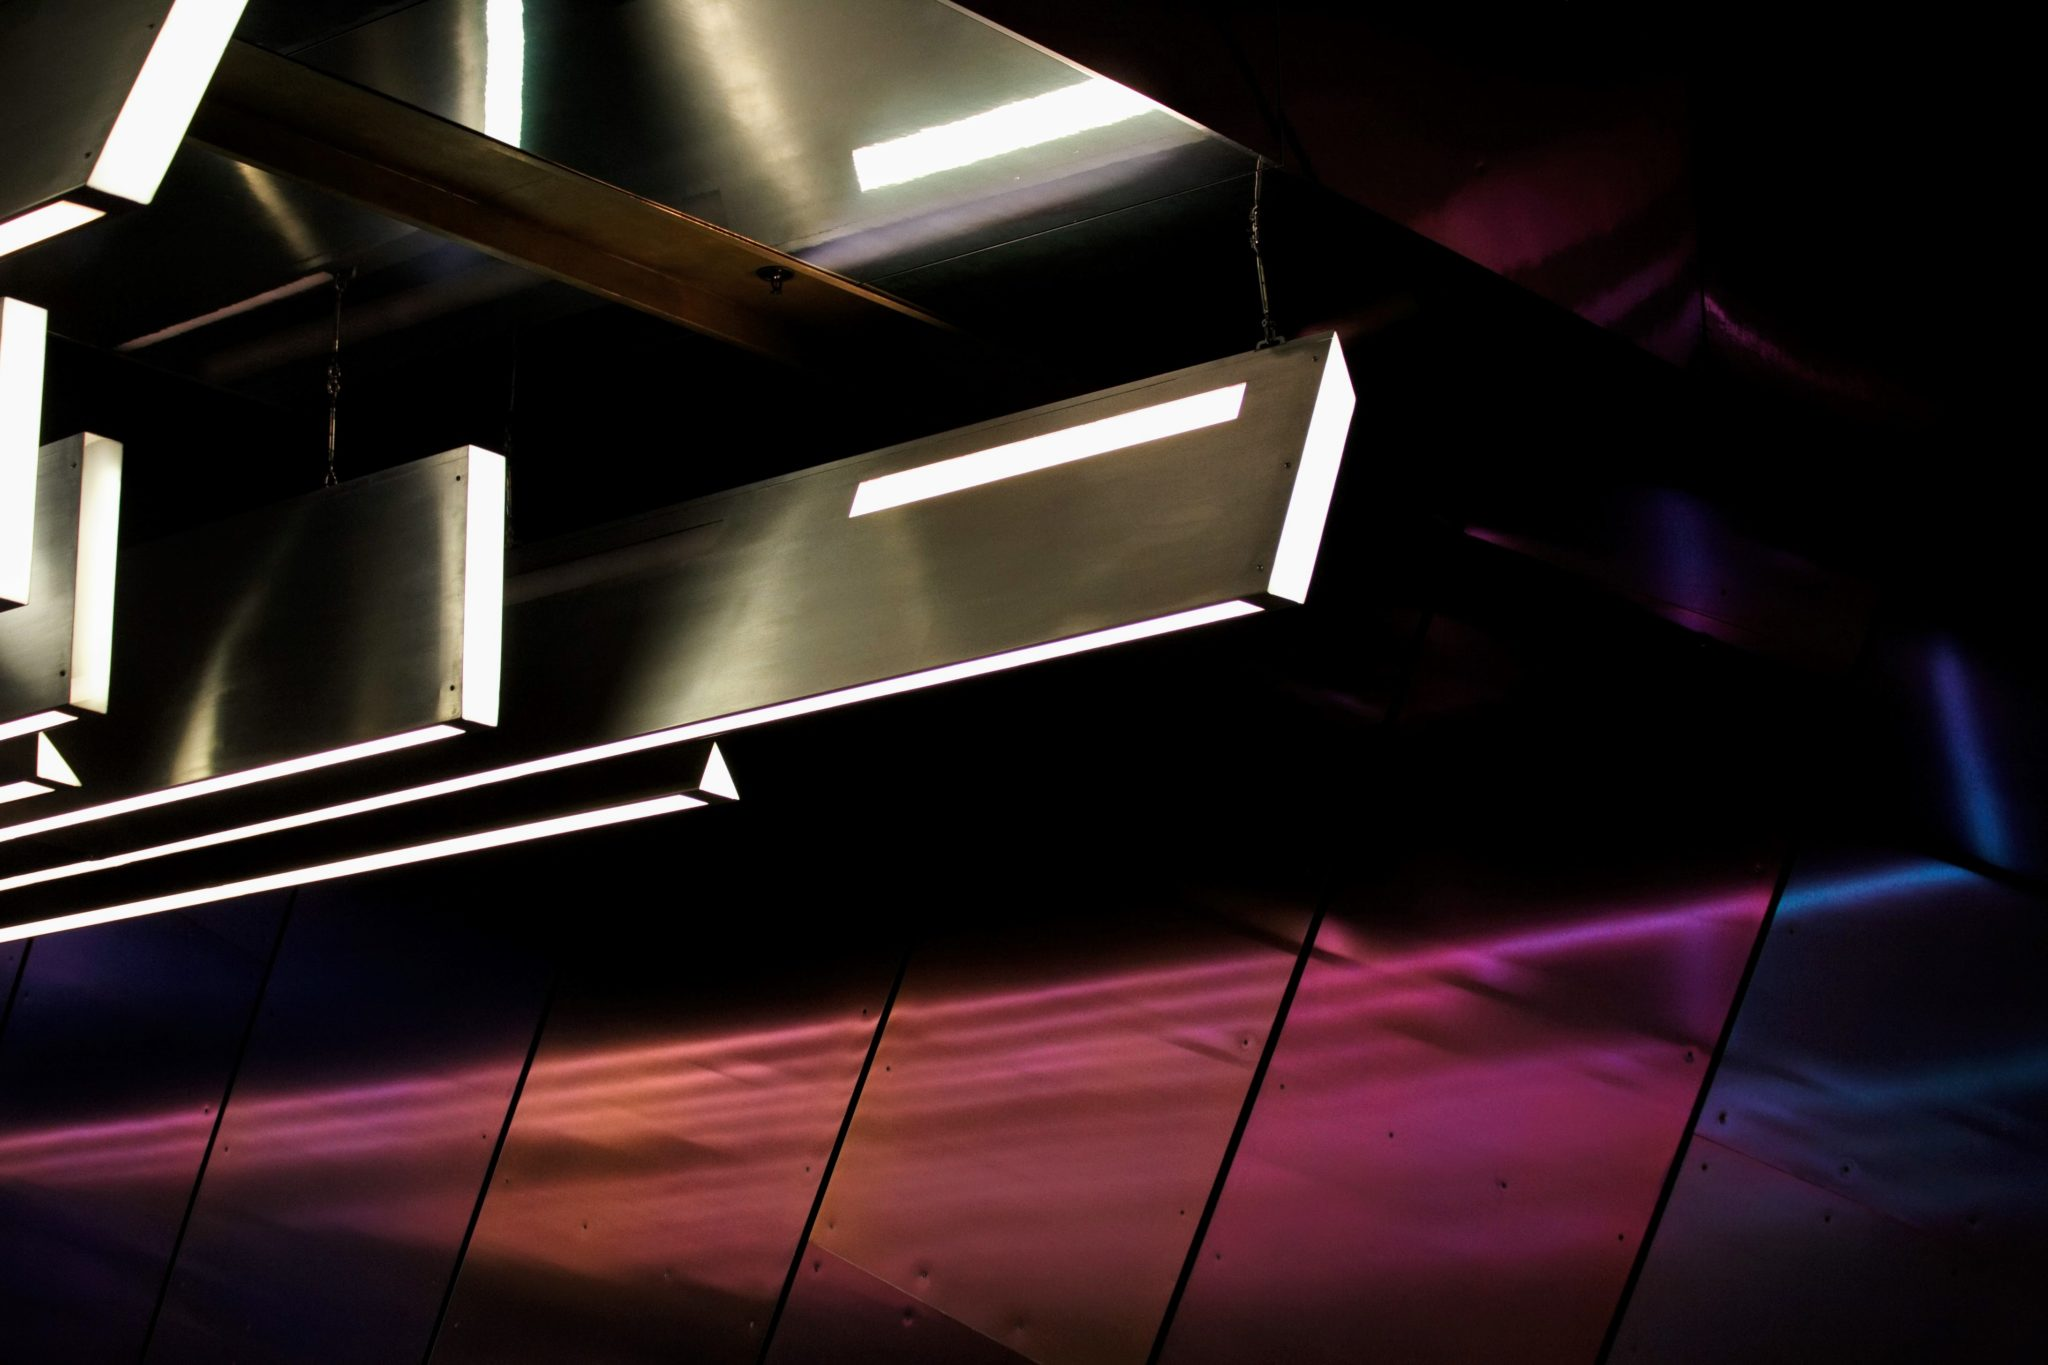 Artisting lighting installation with led and metal work